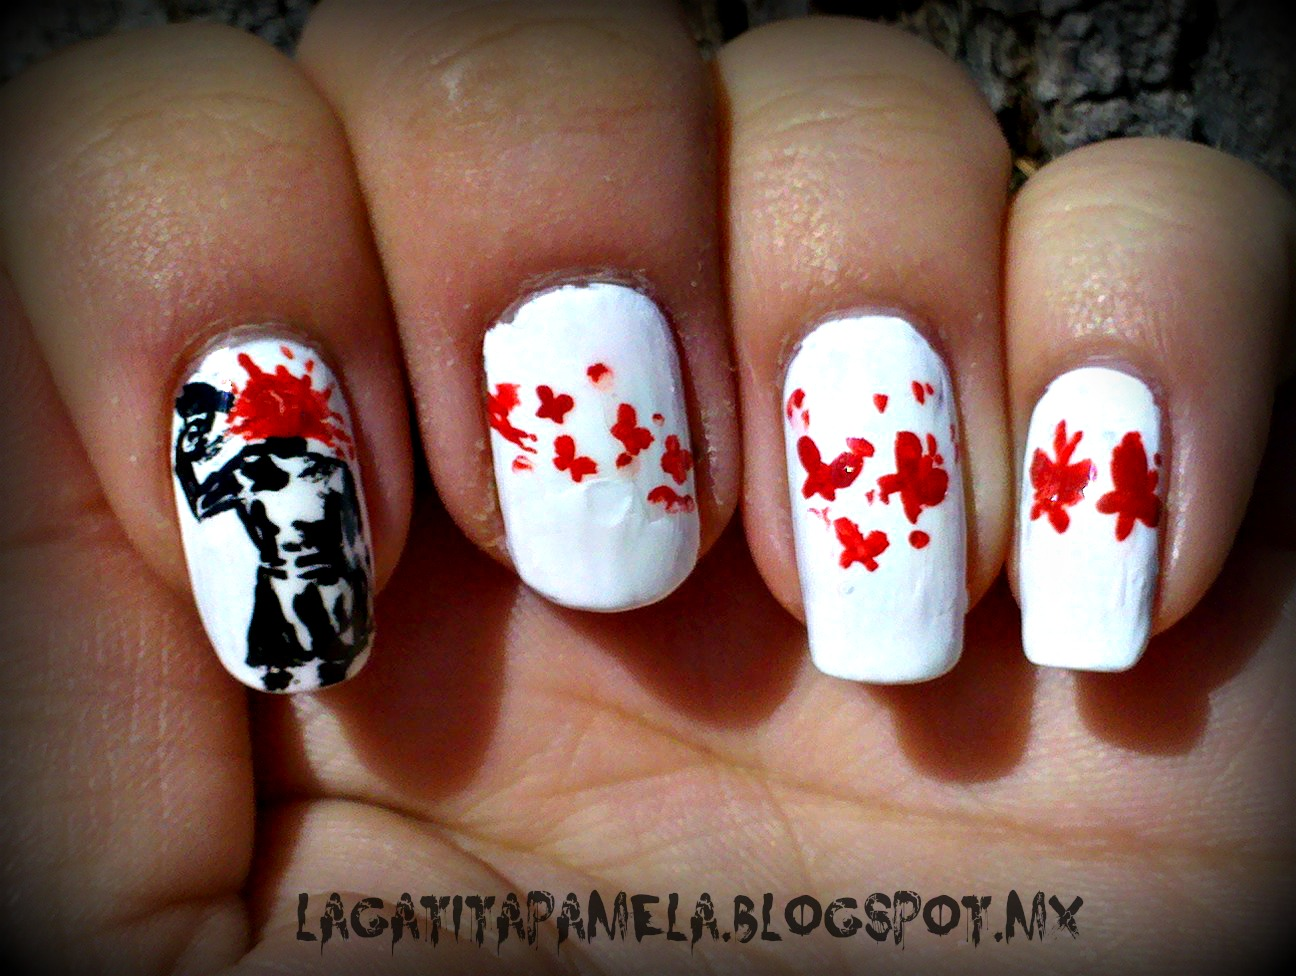 Makeup HD: emo nails-Arte de uñas EMO